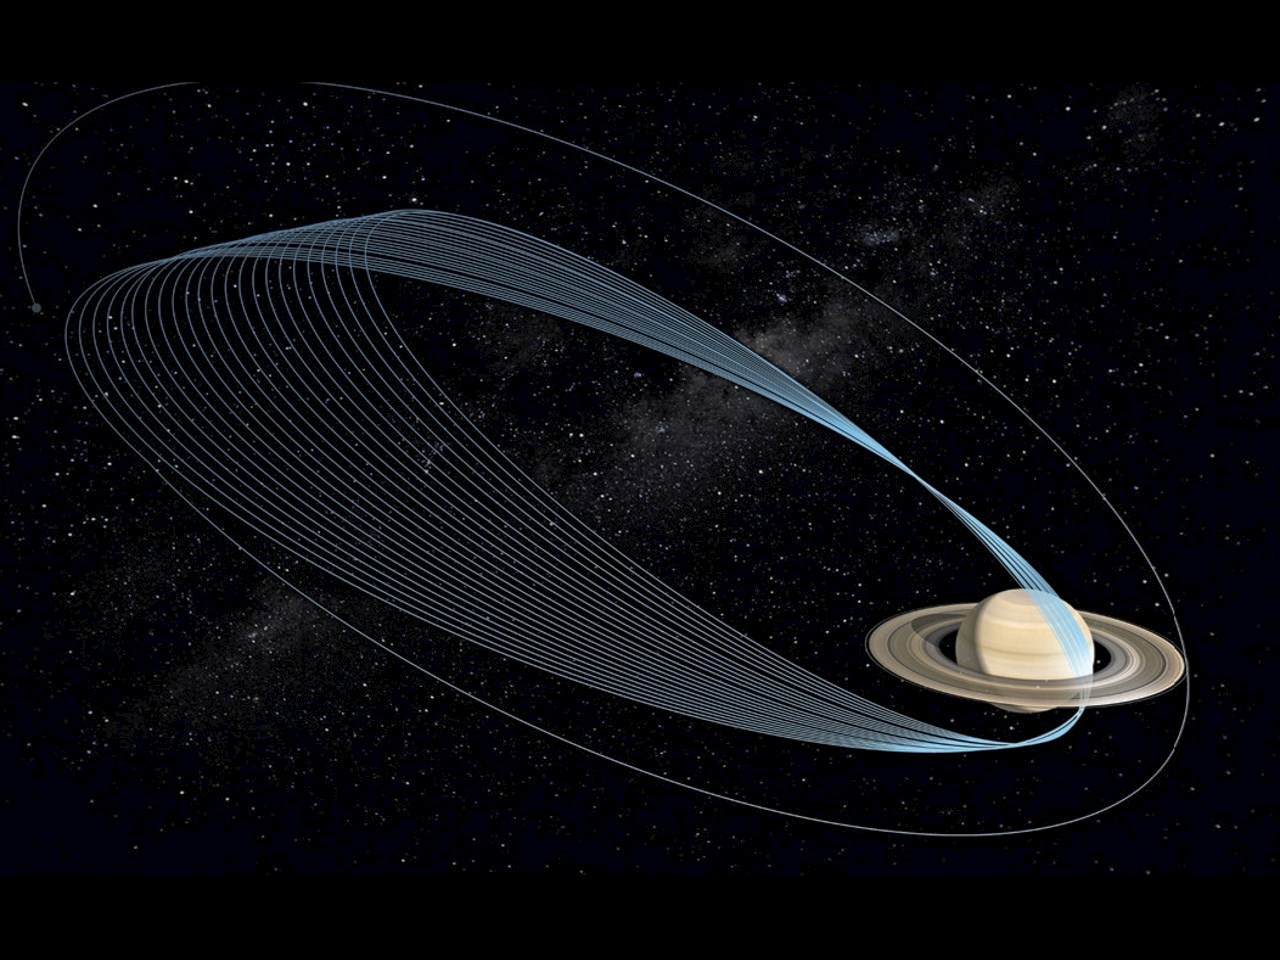 NASA's Cassini spacecraft will make 22 orbits of Saturn during its Grand Finale